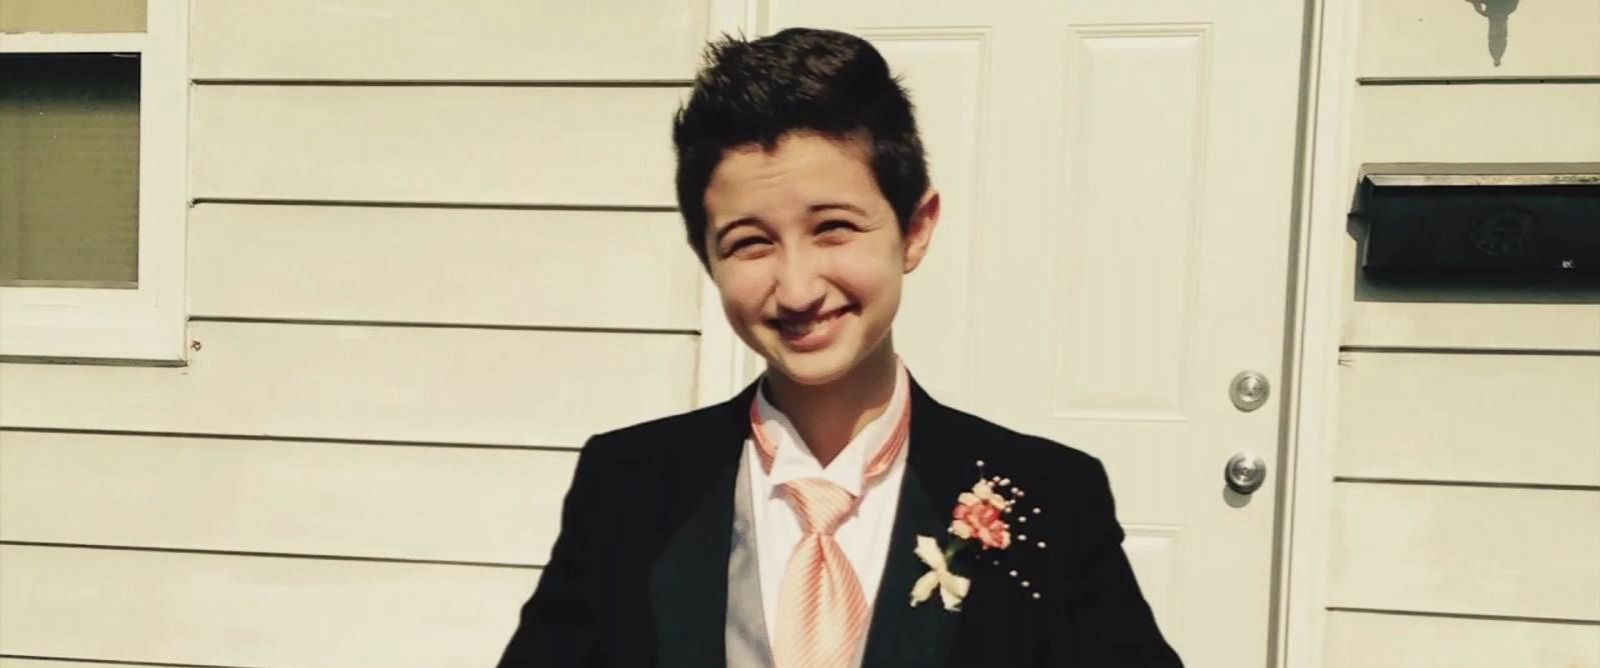 PHOTO: Transgender teen Ash Whitaker won the right to run for Prom King in Kenosha, Wisconsin.